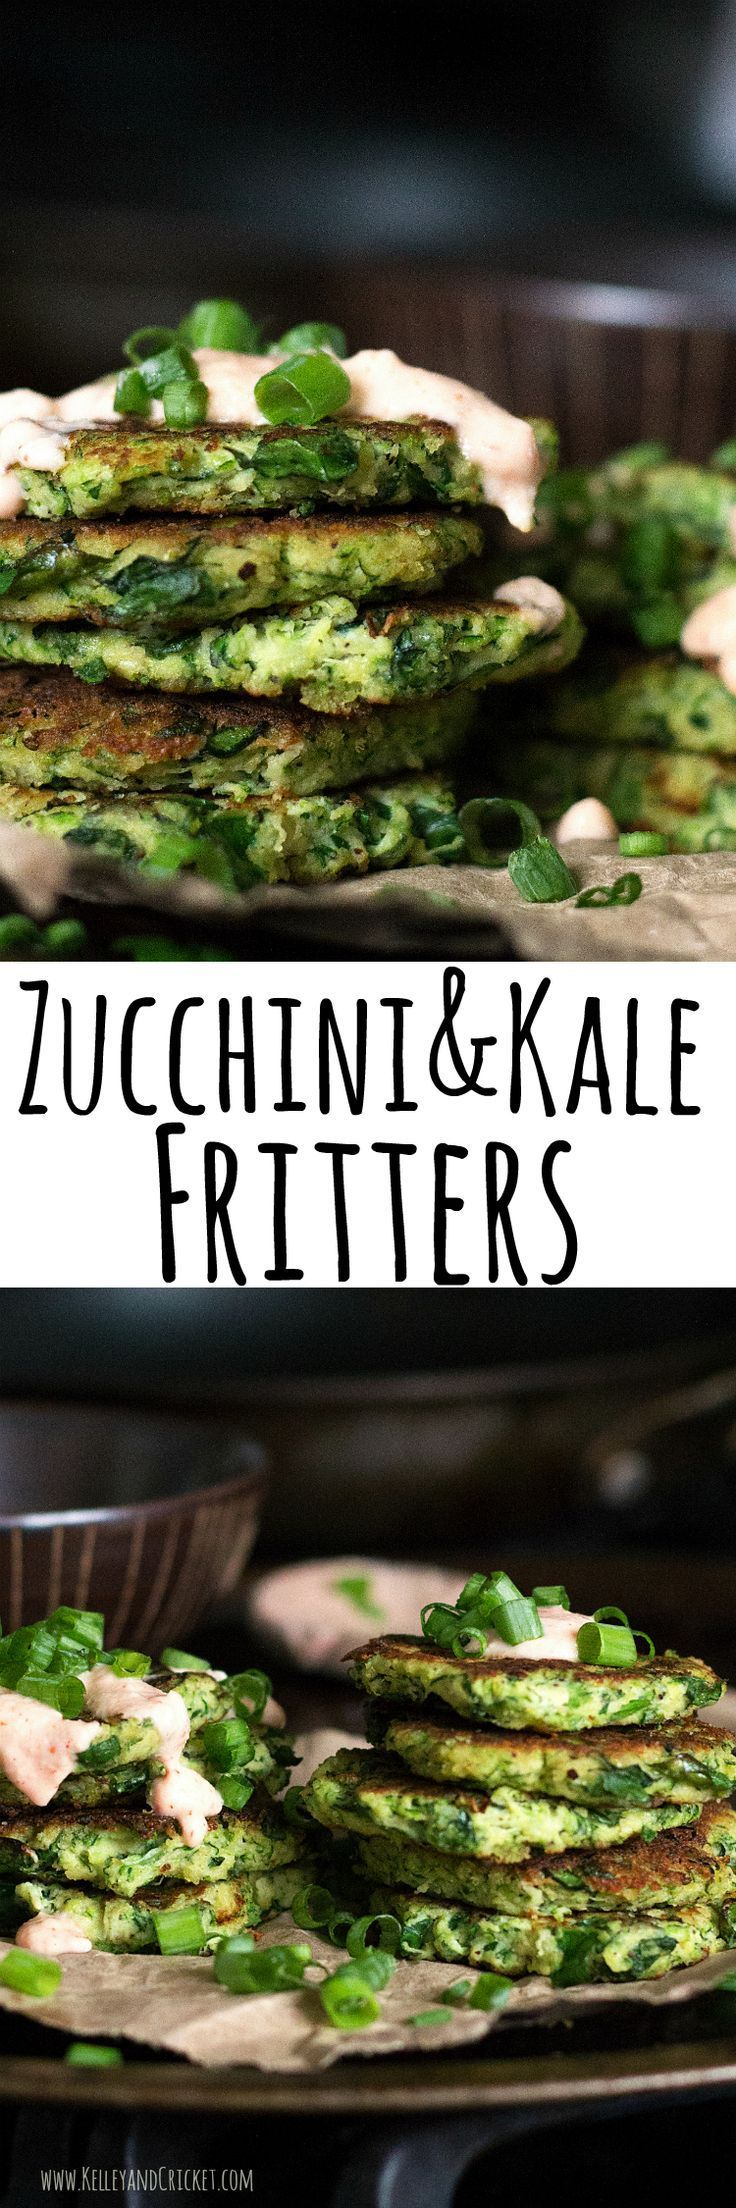 These tasty little fritters are packed full of nutrients and make the perfect healthy snack or meal! They are easy-peasy to make and only require a few simple ingredients. They also happen to be grain-free,  gluten-free, and paleo!